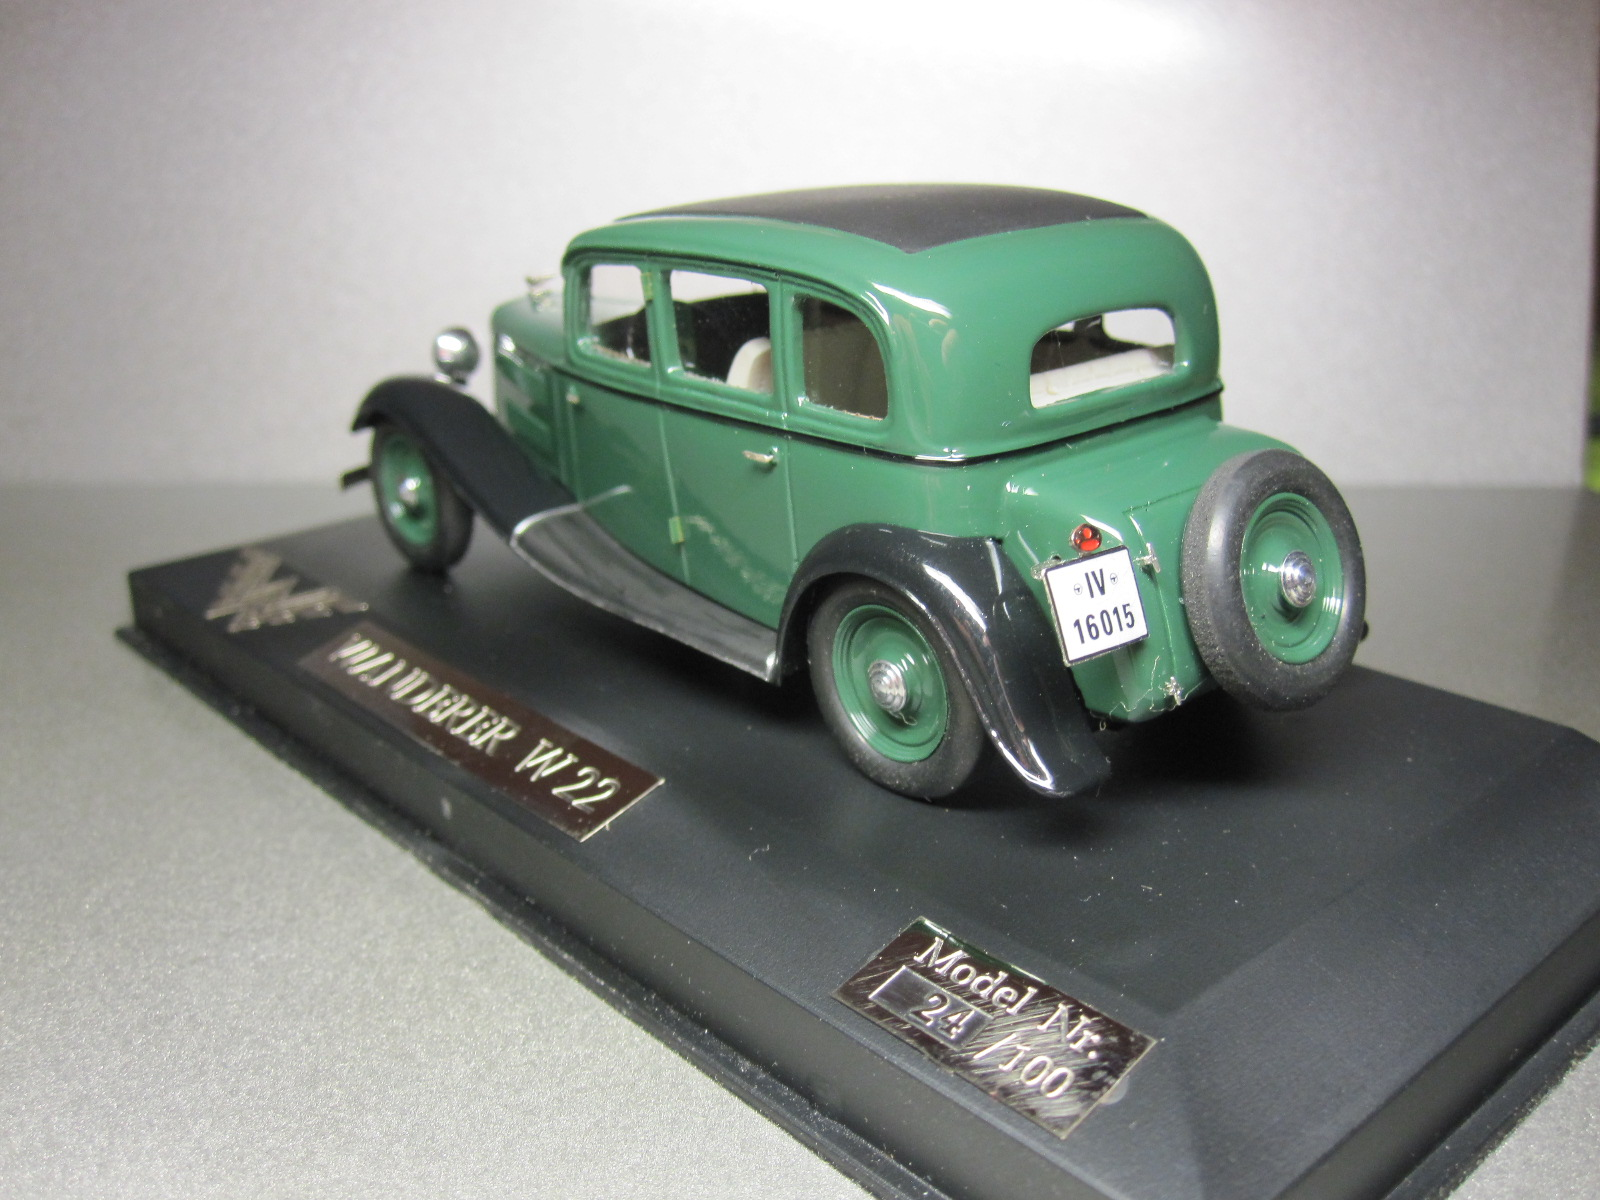 ZZ Model: 1933 Wanderer W22 Limousine Green in 1:43 scale . Picture provided by Aleksandr (Desdemona), 2010-06-08 14:48:26